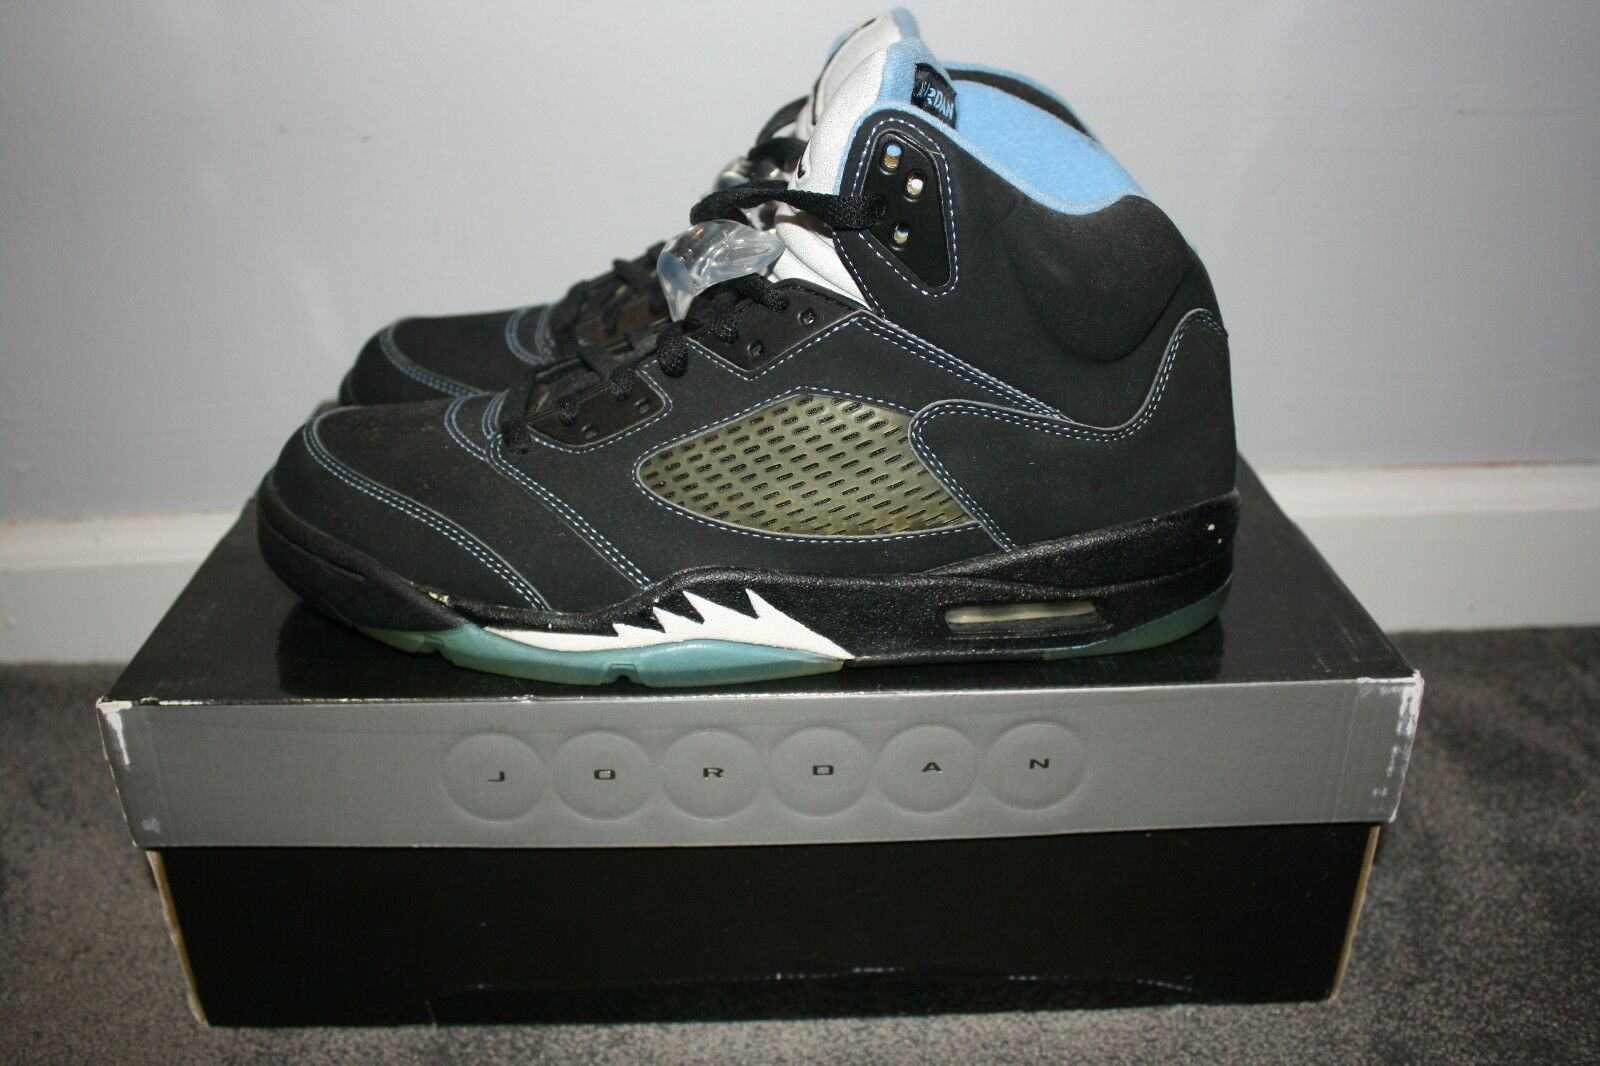 DEADSTOCK 2006 Nike Air Jordan 5 V Retro LS Black University bluee Size 11